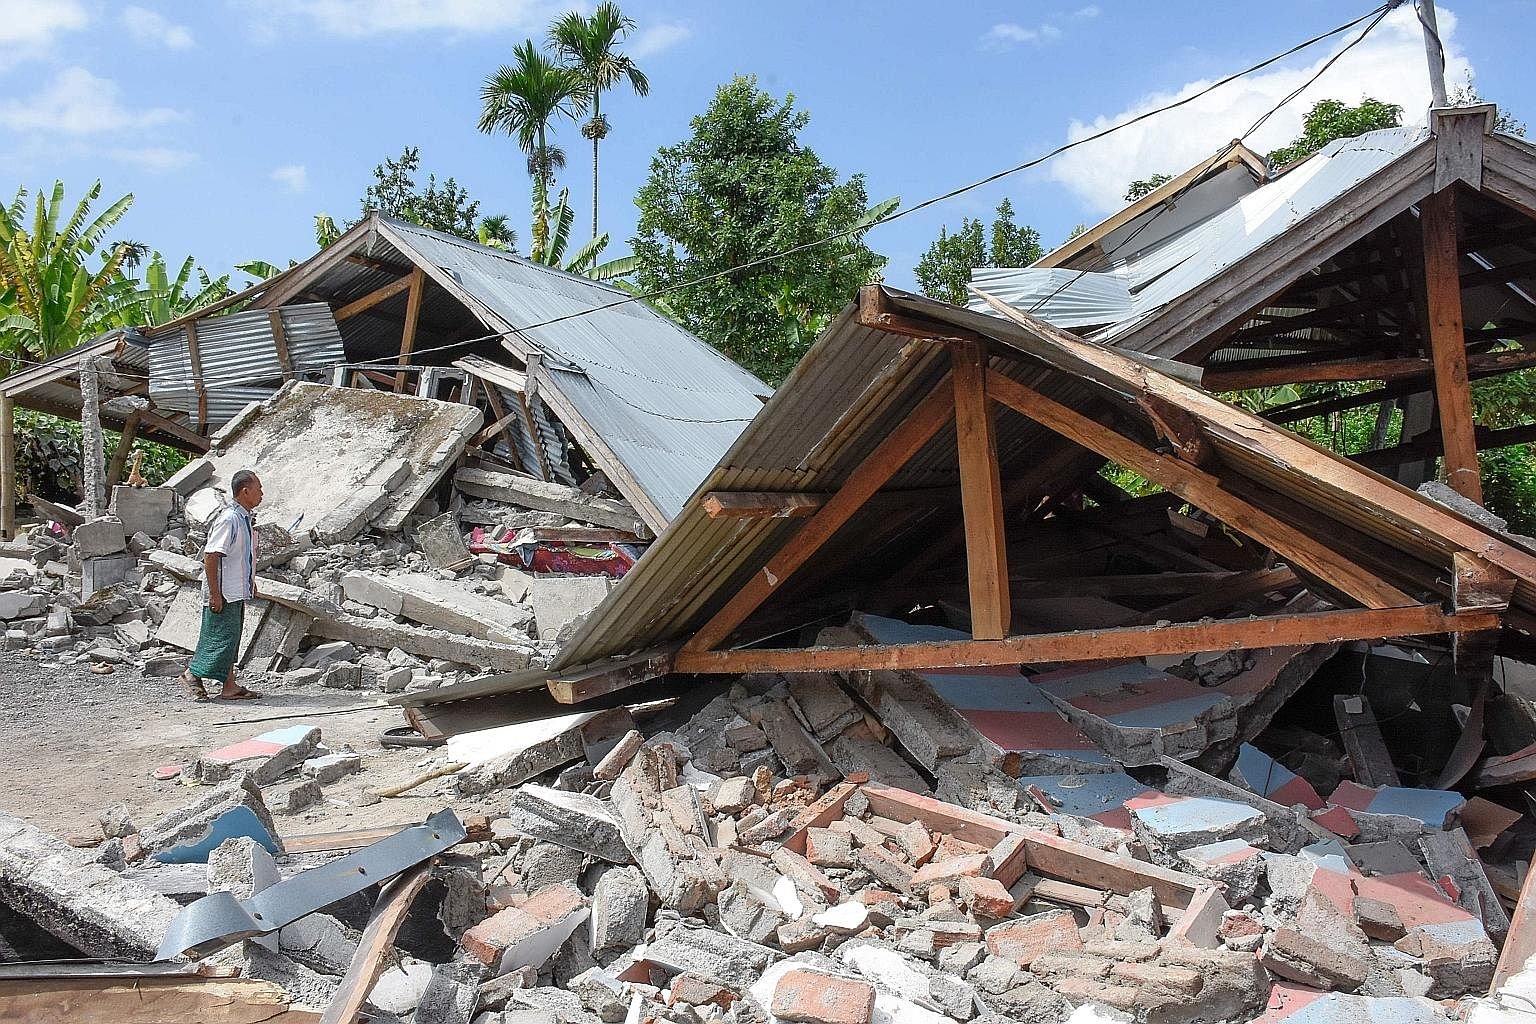 The Indonesian government has declared a three-day state of emergency in Lombok, a popular tourist island near Bali, after it was hit yesterday by an earthquake that killed at least 14 people. Hundreds of homes were damaged by the 6.4-magnitude quake